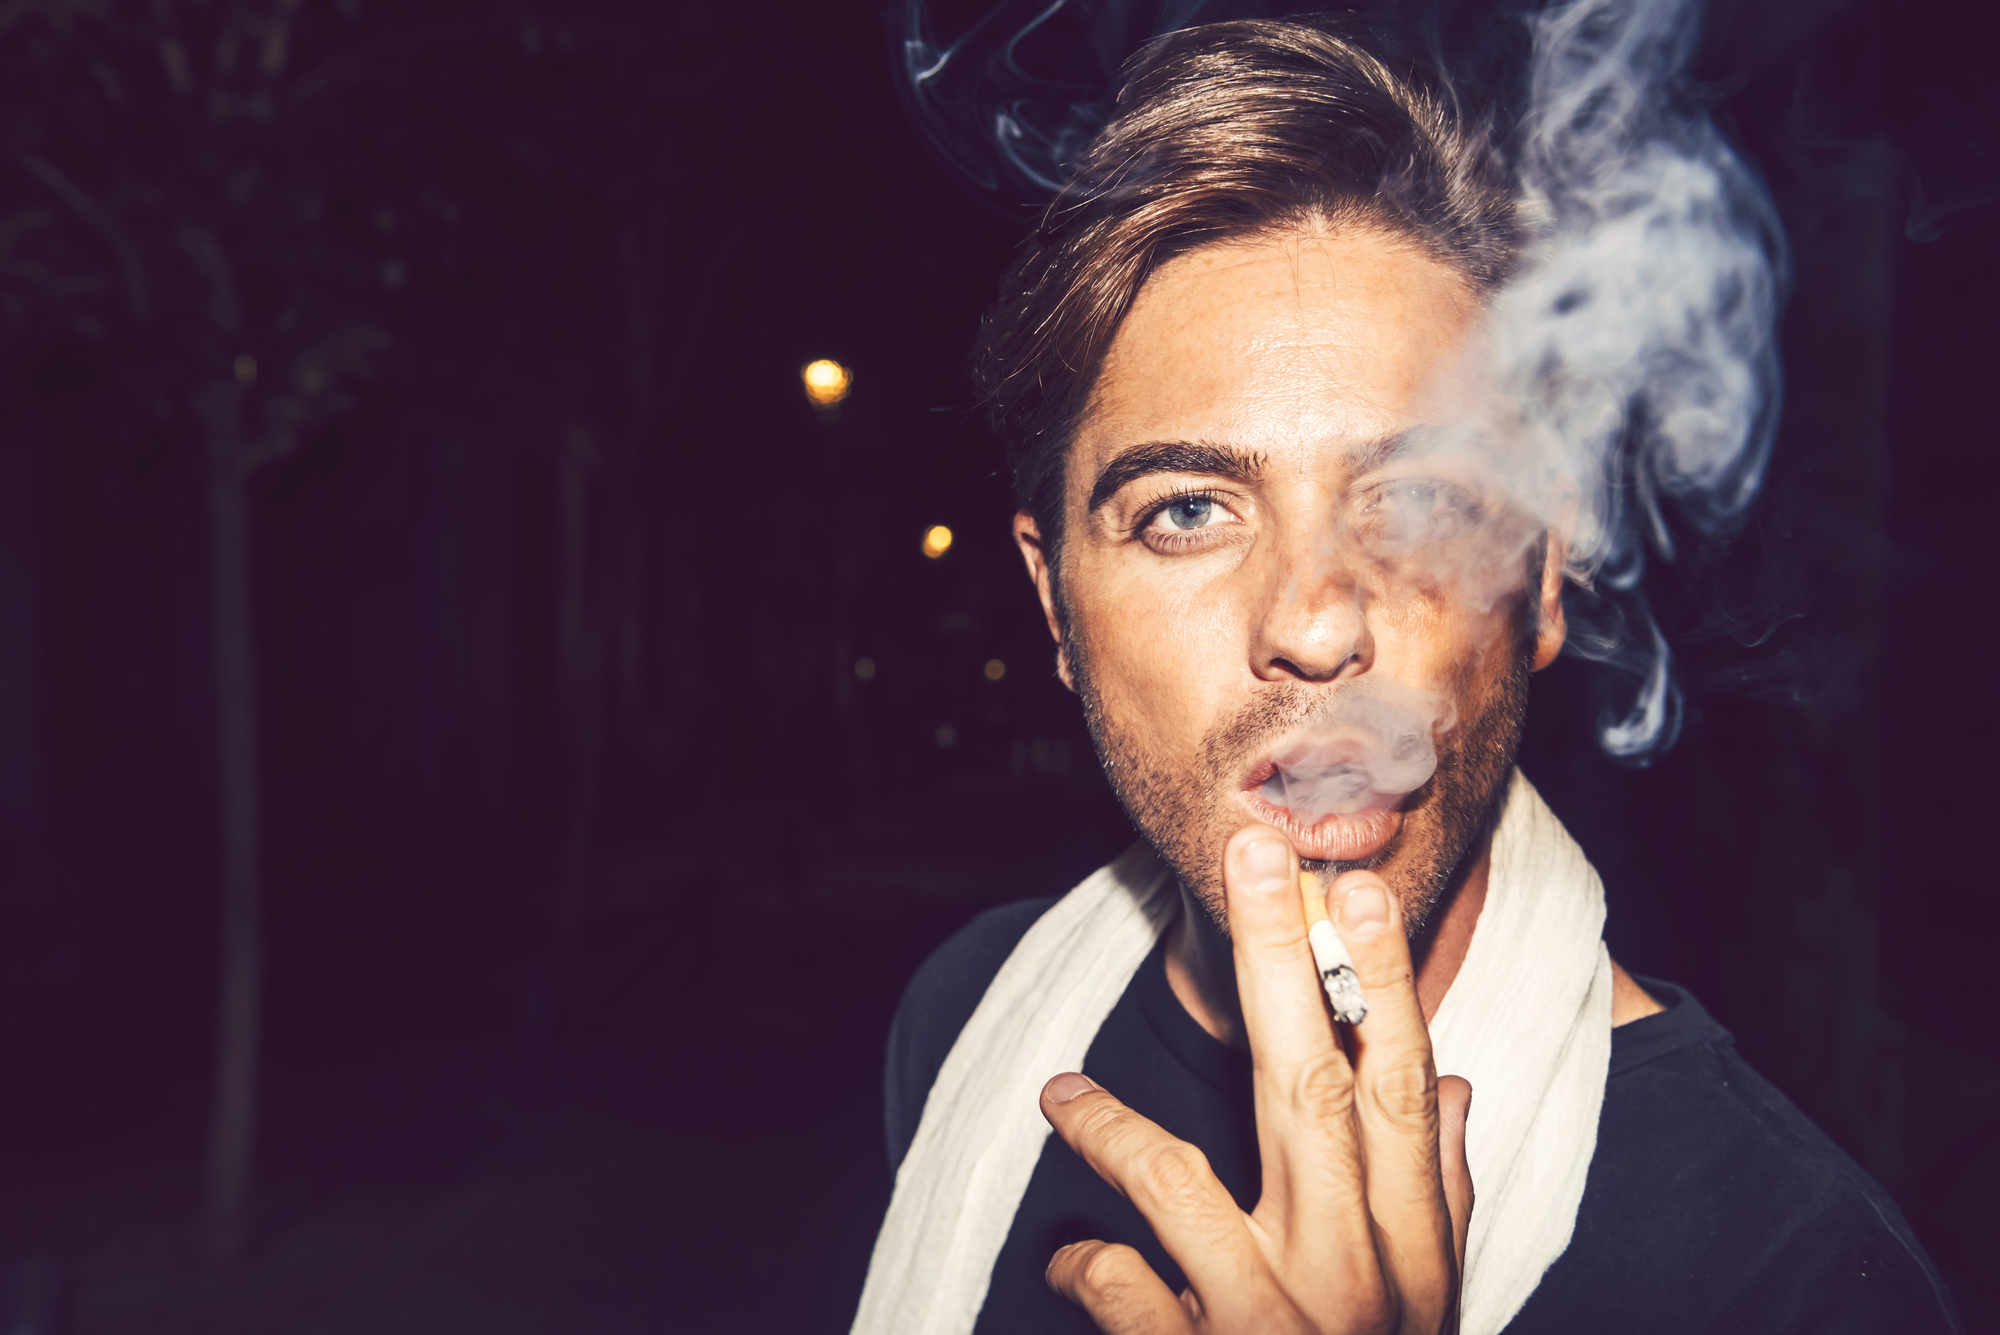 Young fashion man smoking a cigarette on the night street